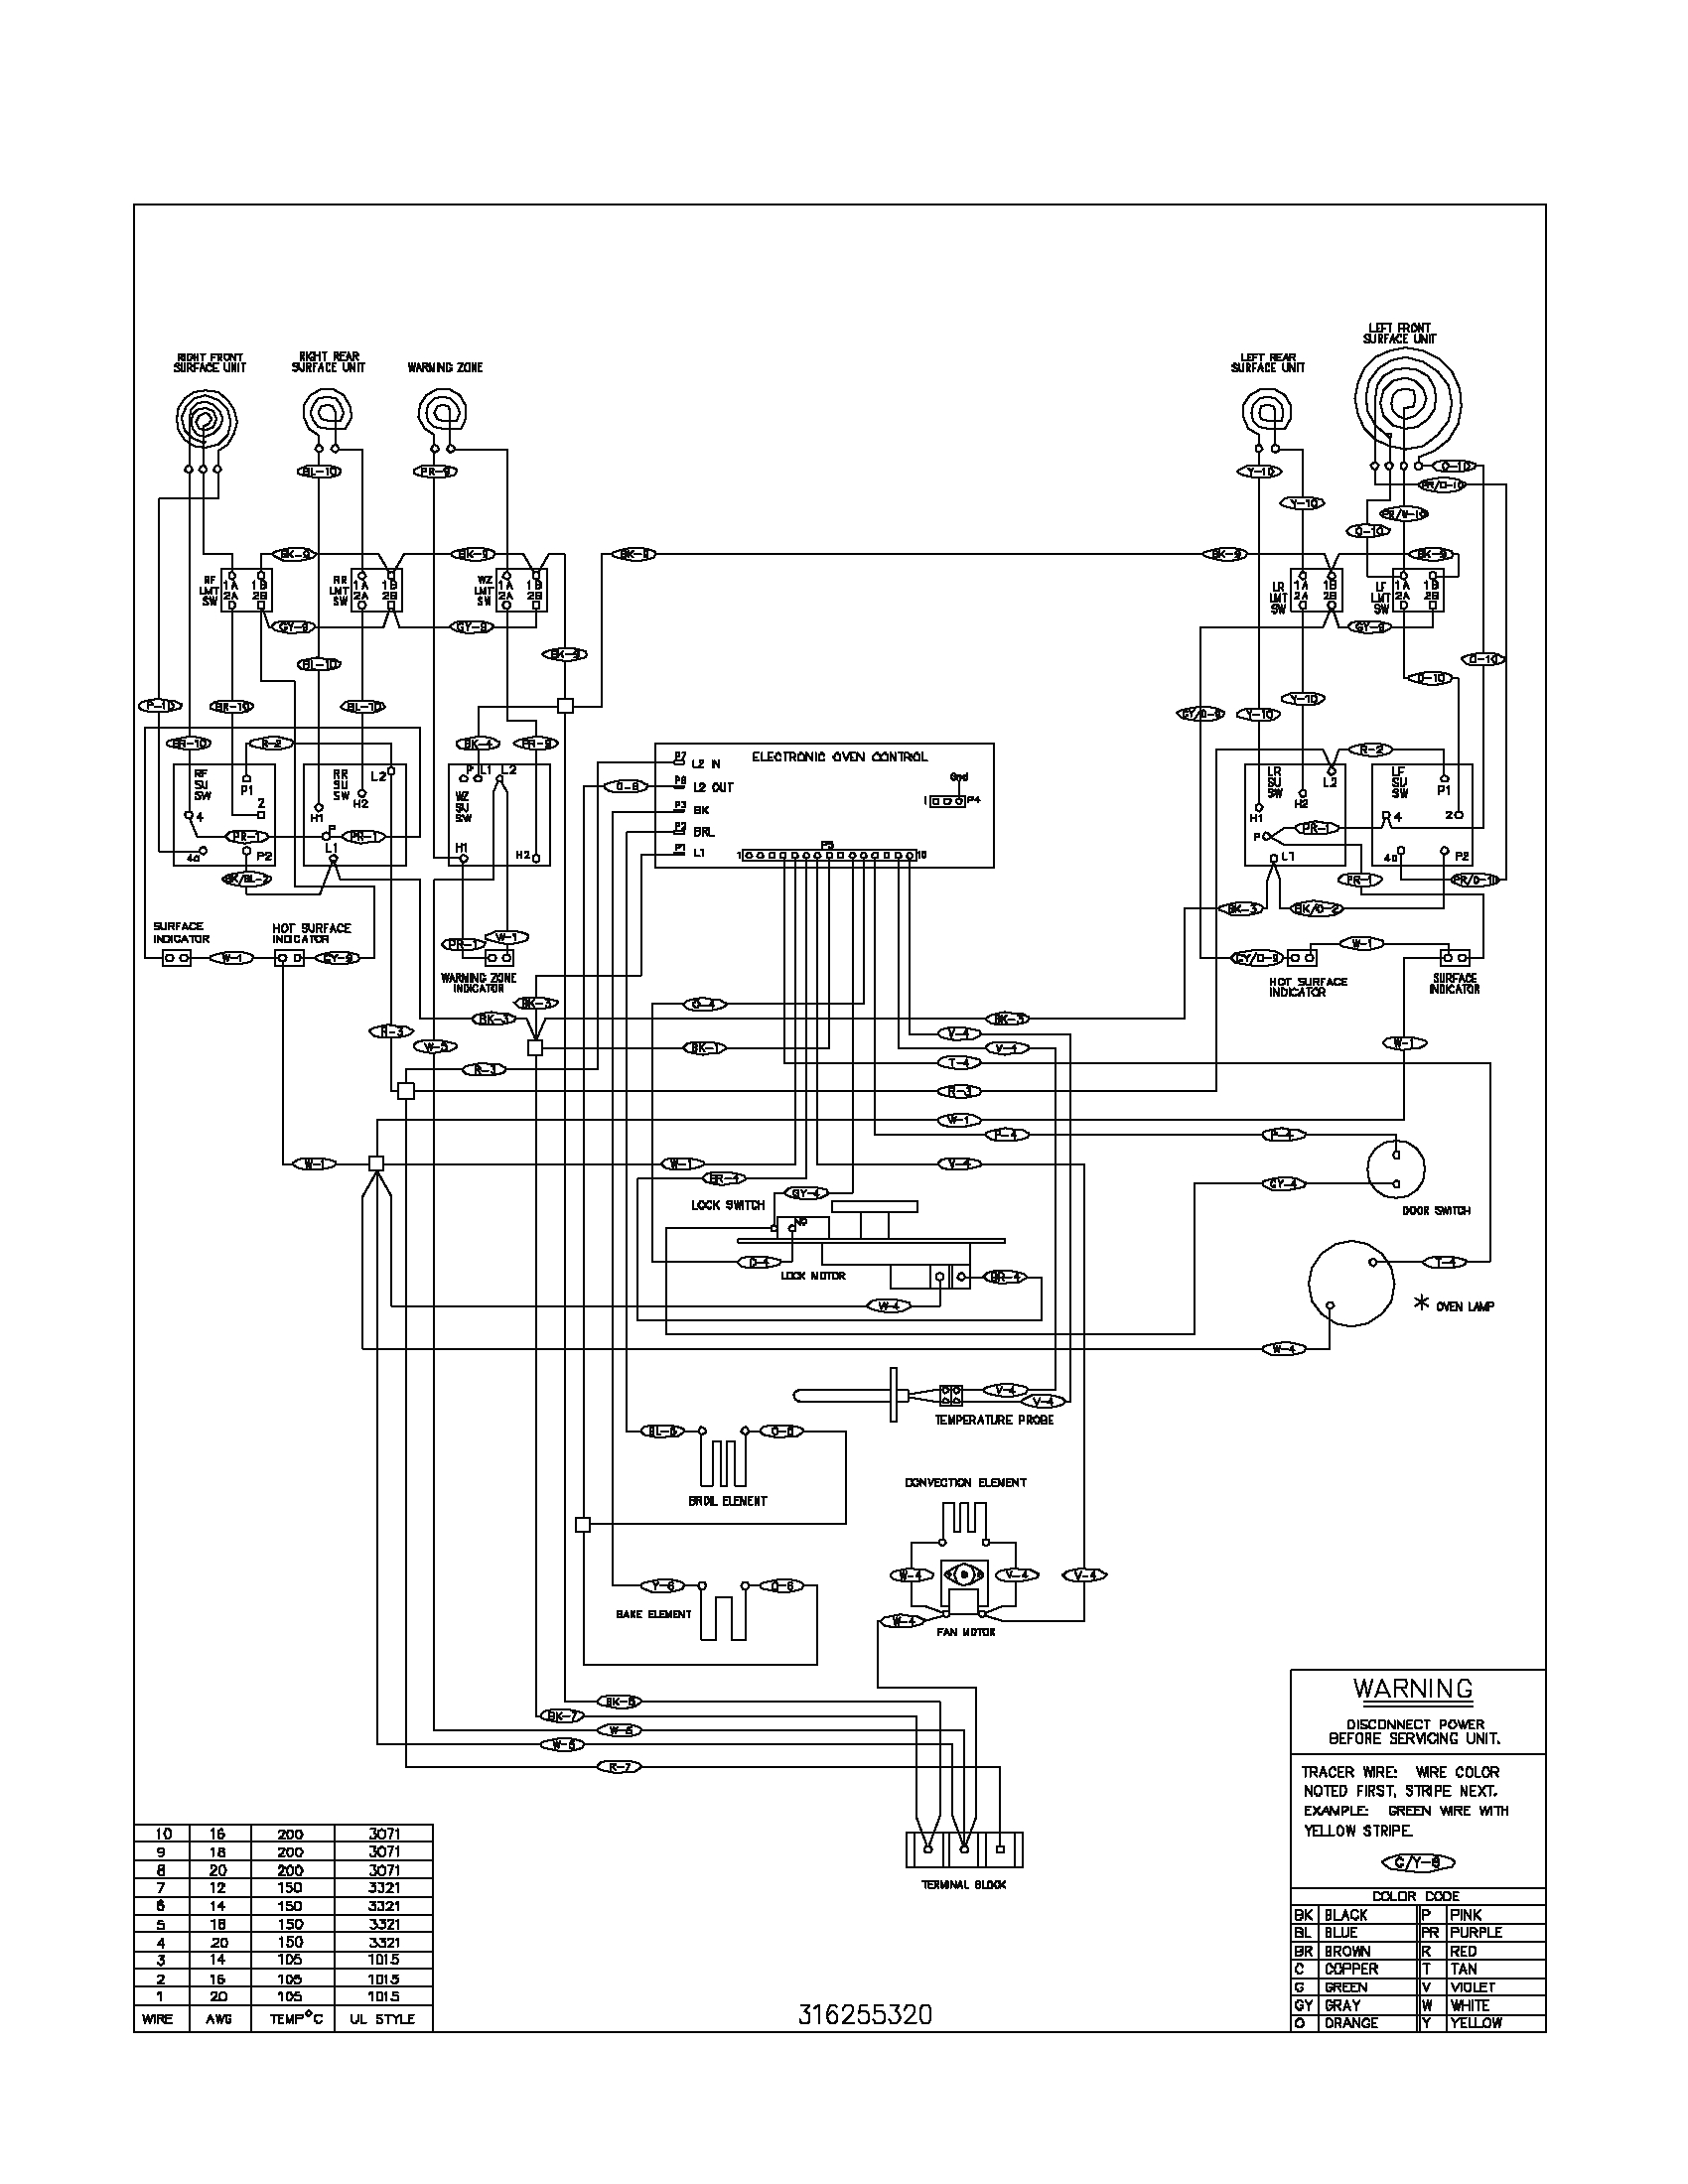 hobart dishwasher am14 wiring diagram sample